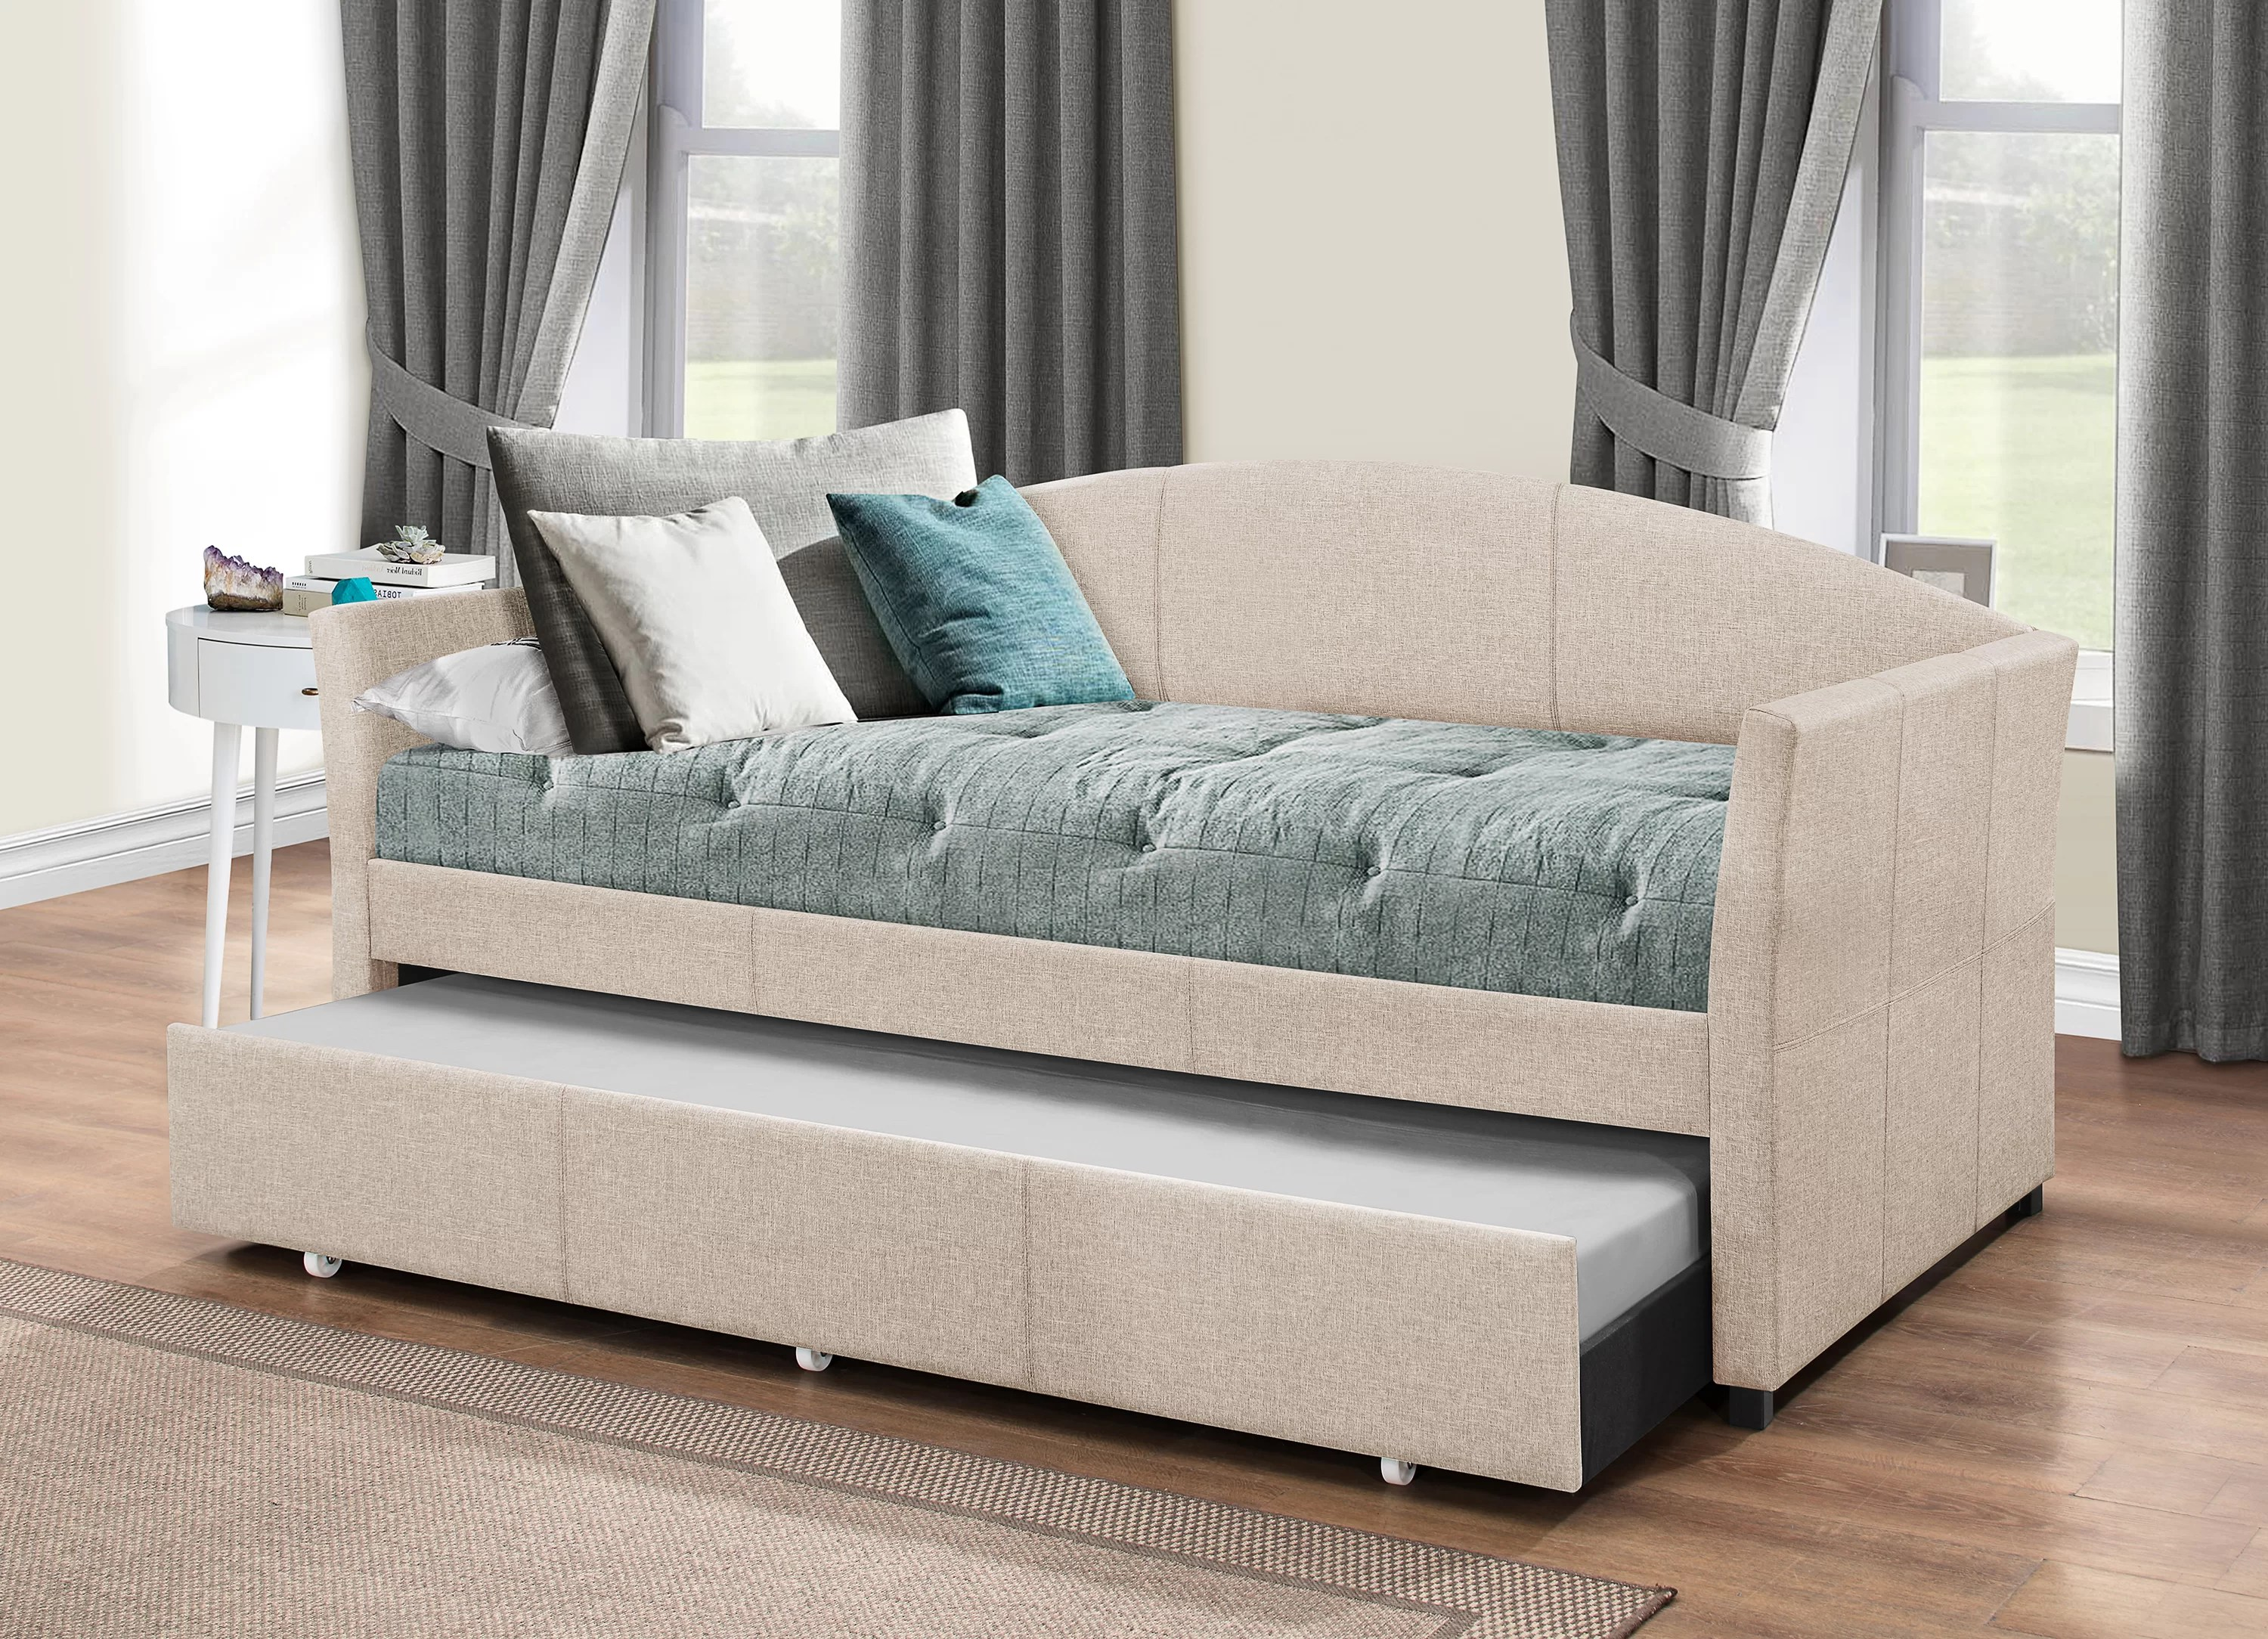 Alvina Twin Daybed With Trundle Reviews Joss Main